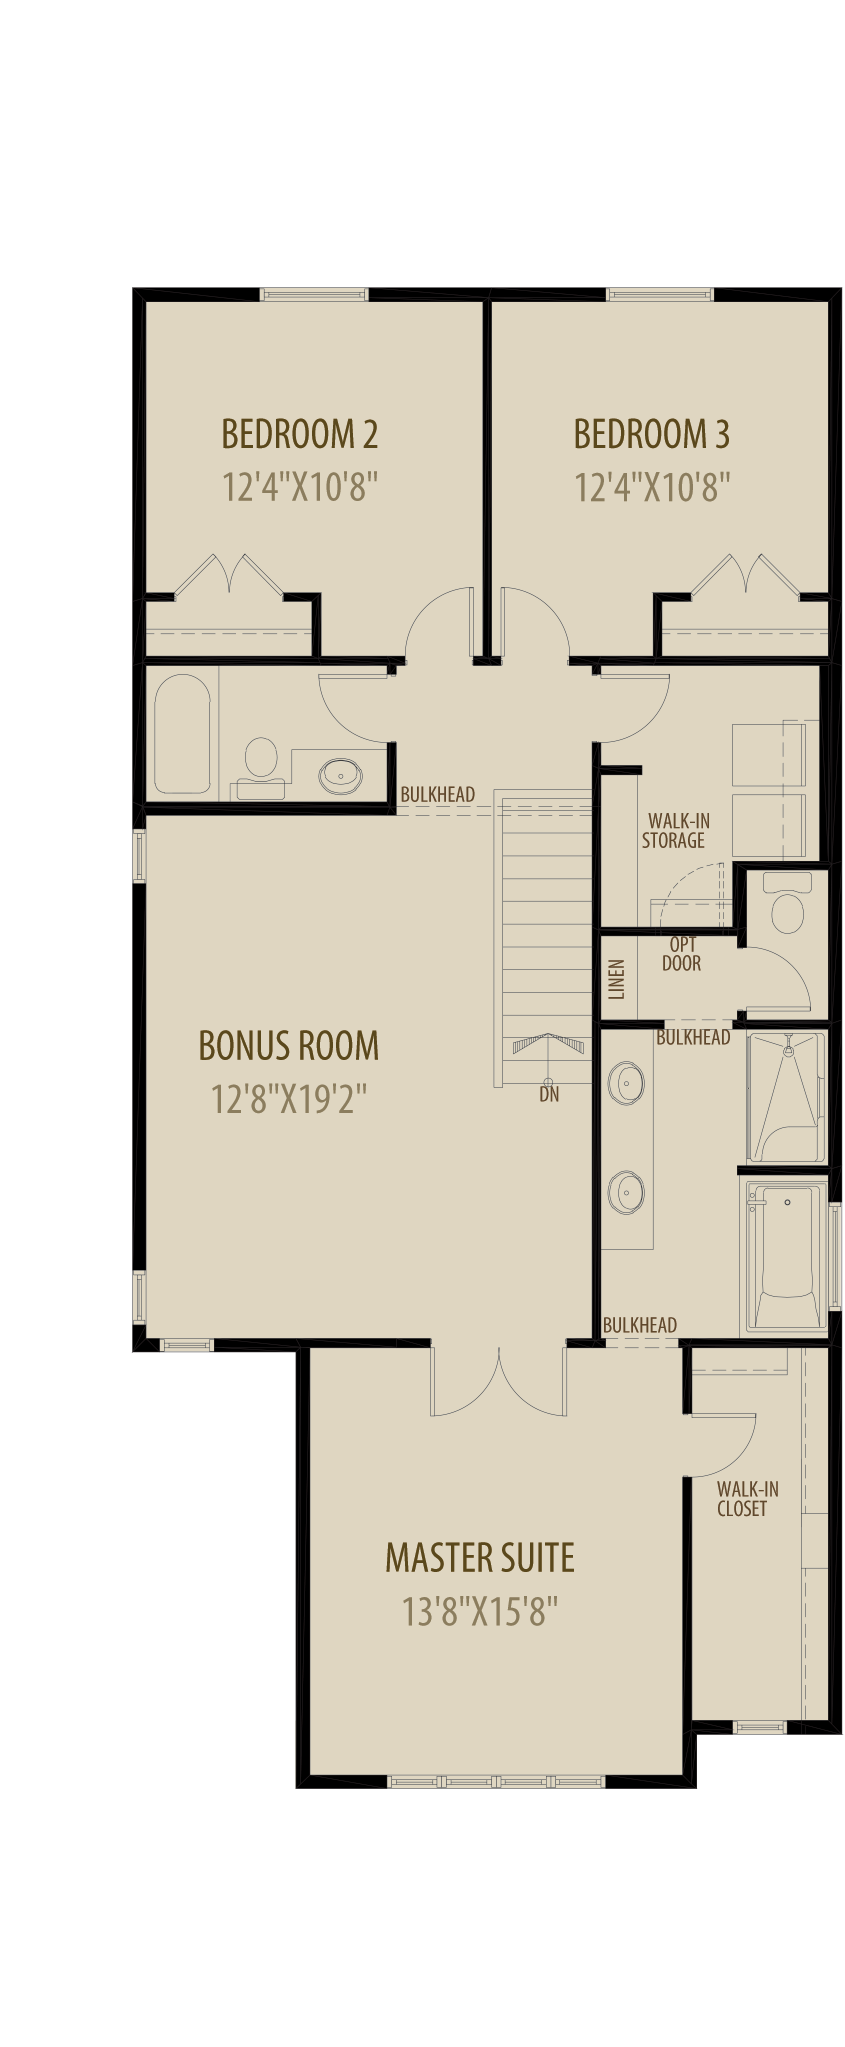 Revised Upper Floor 3 (Adds 60 Sq Ft)